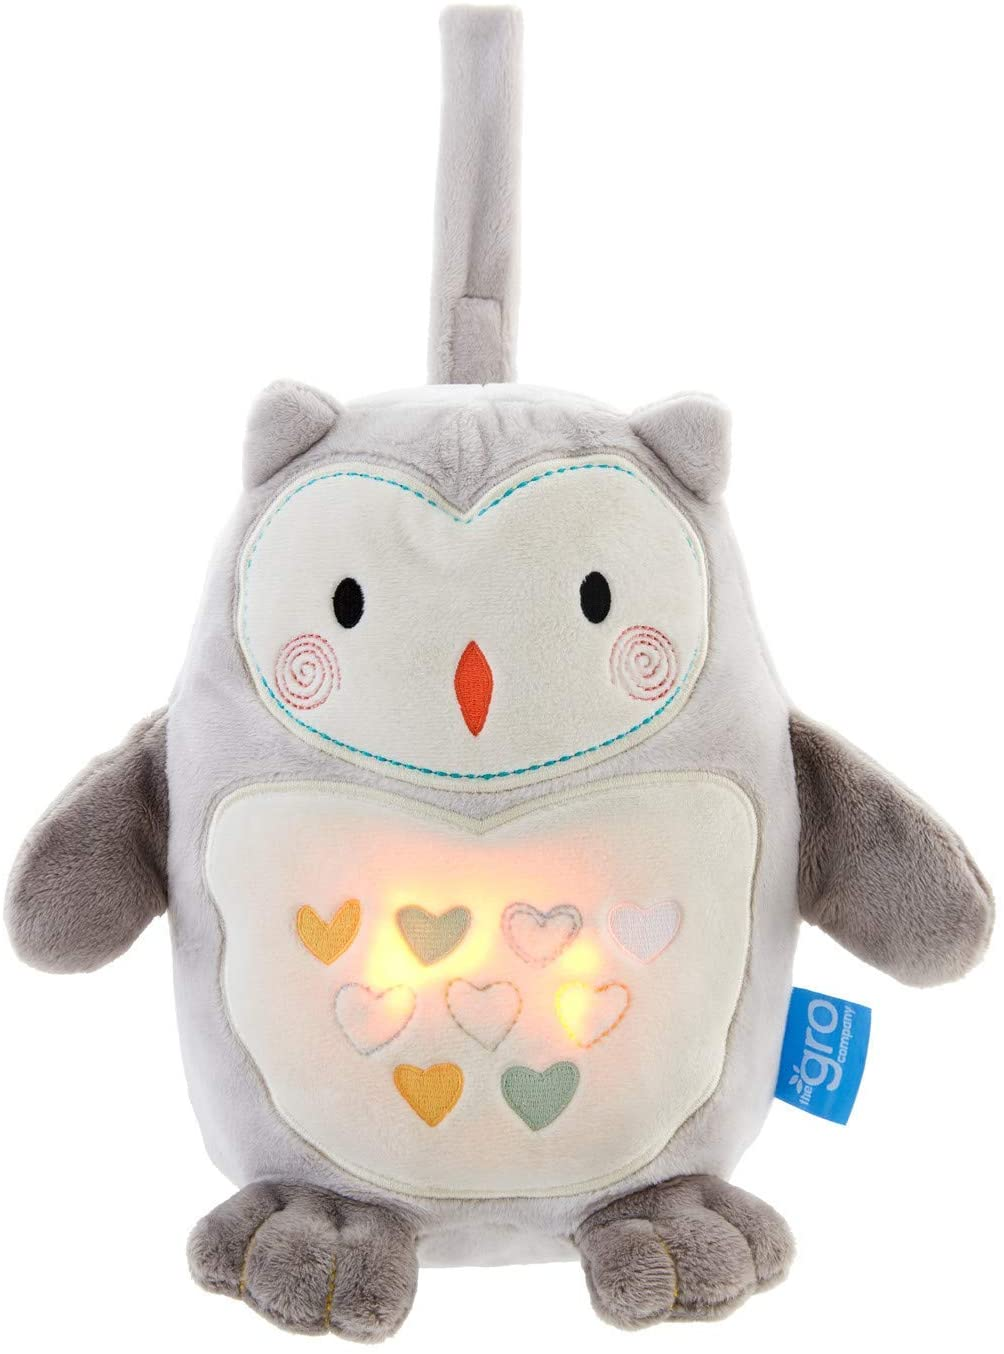 The Gro Company Ollie the Owl Light and Sound Sleep Aid.